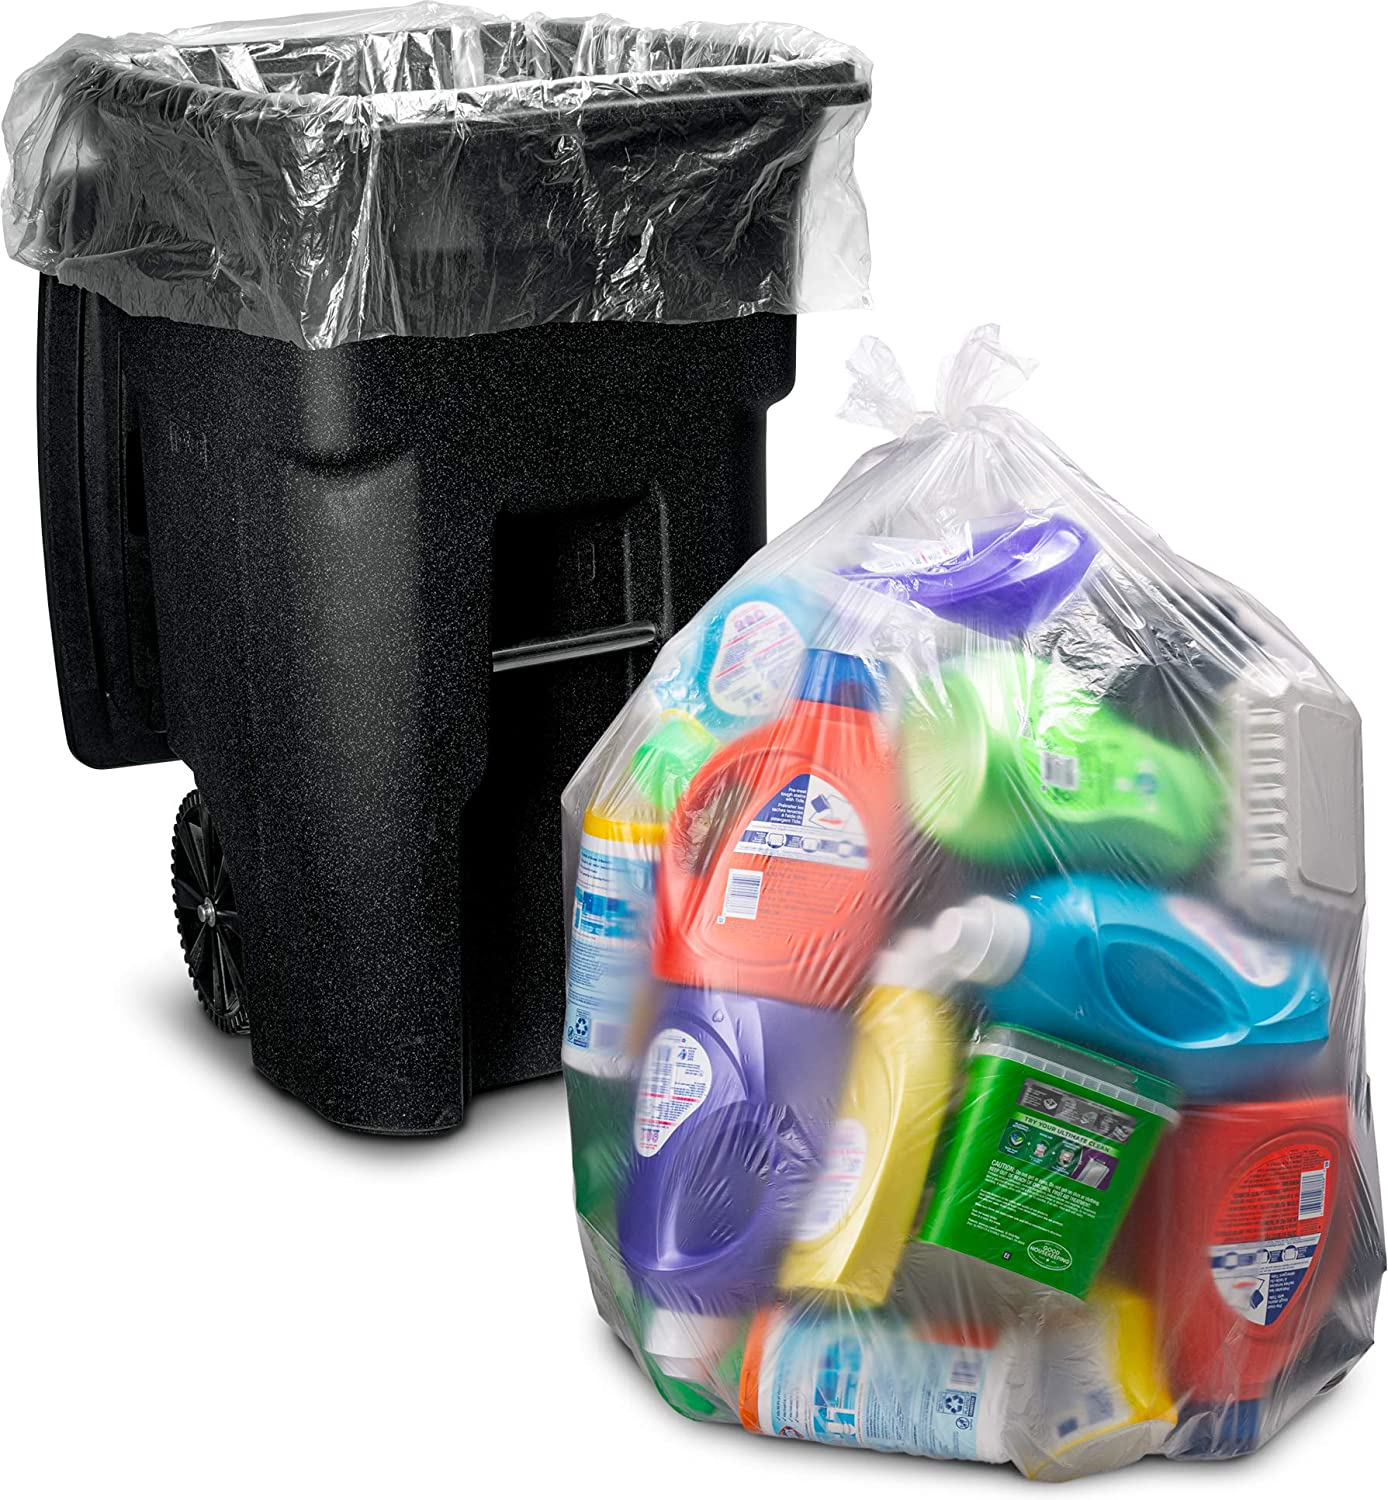 "95-96 Gallon Clear Garbage Bags, (25 Count w/Ties) Large Plastic Trash Bags, 61""W x 68""H."